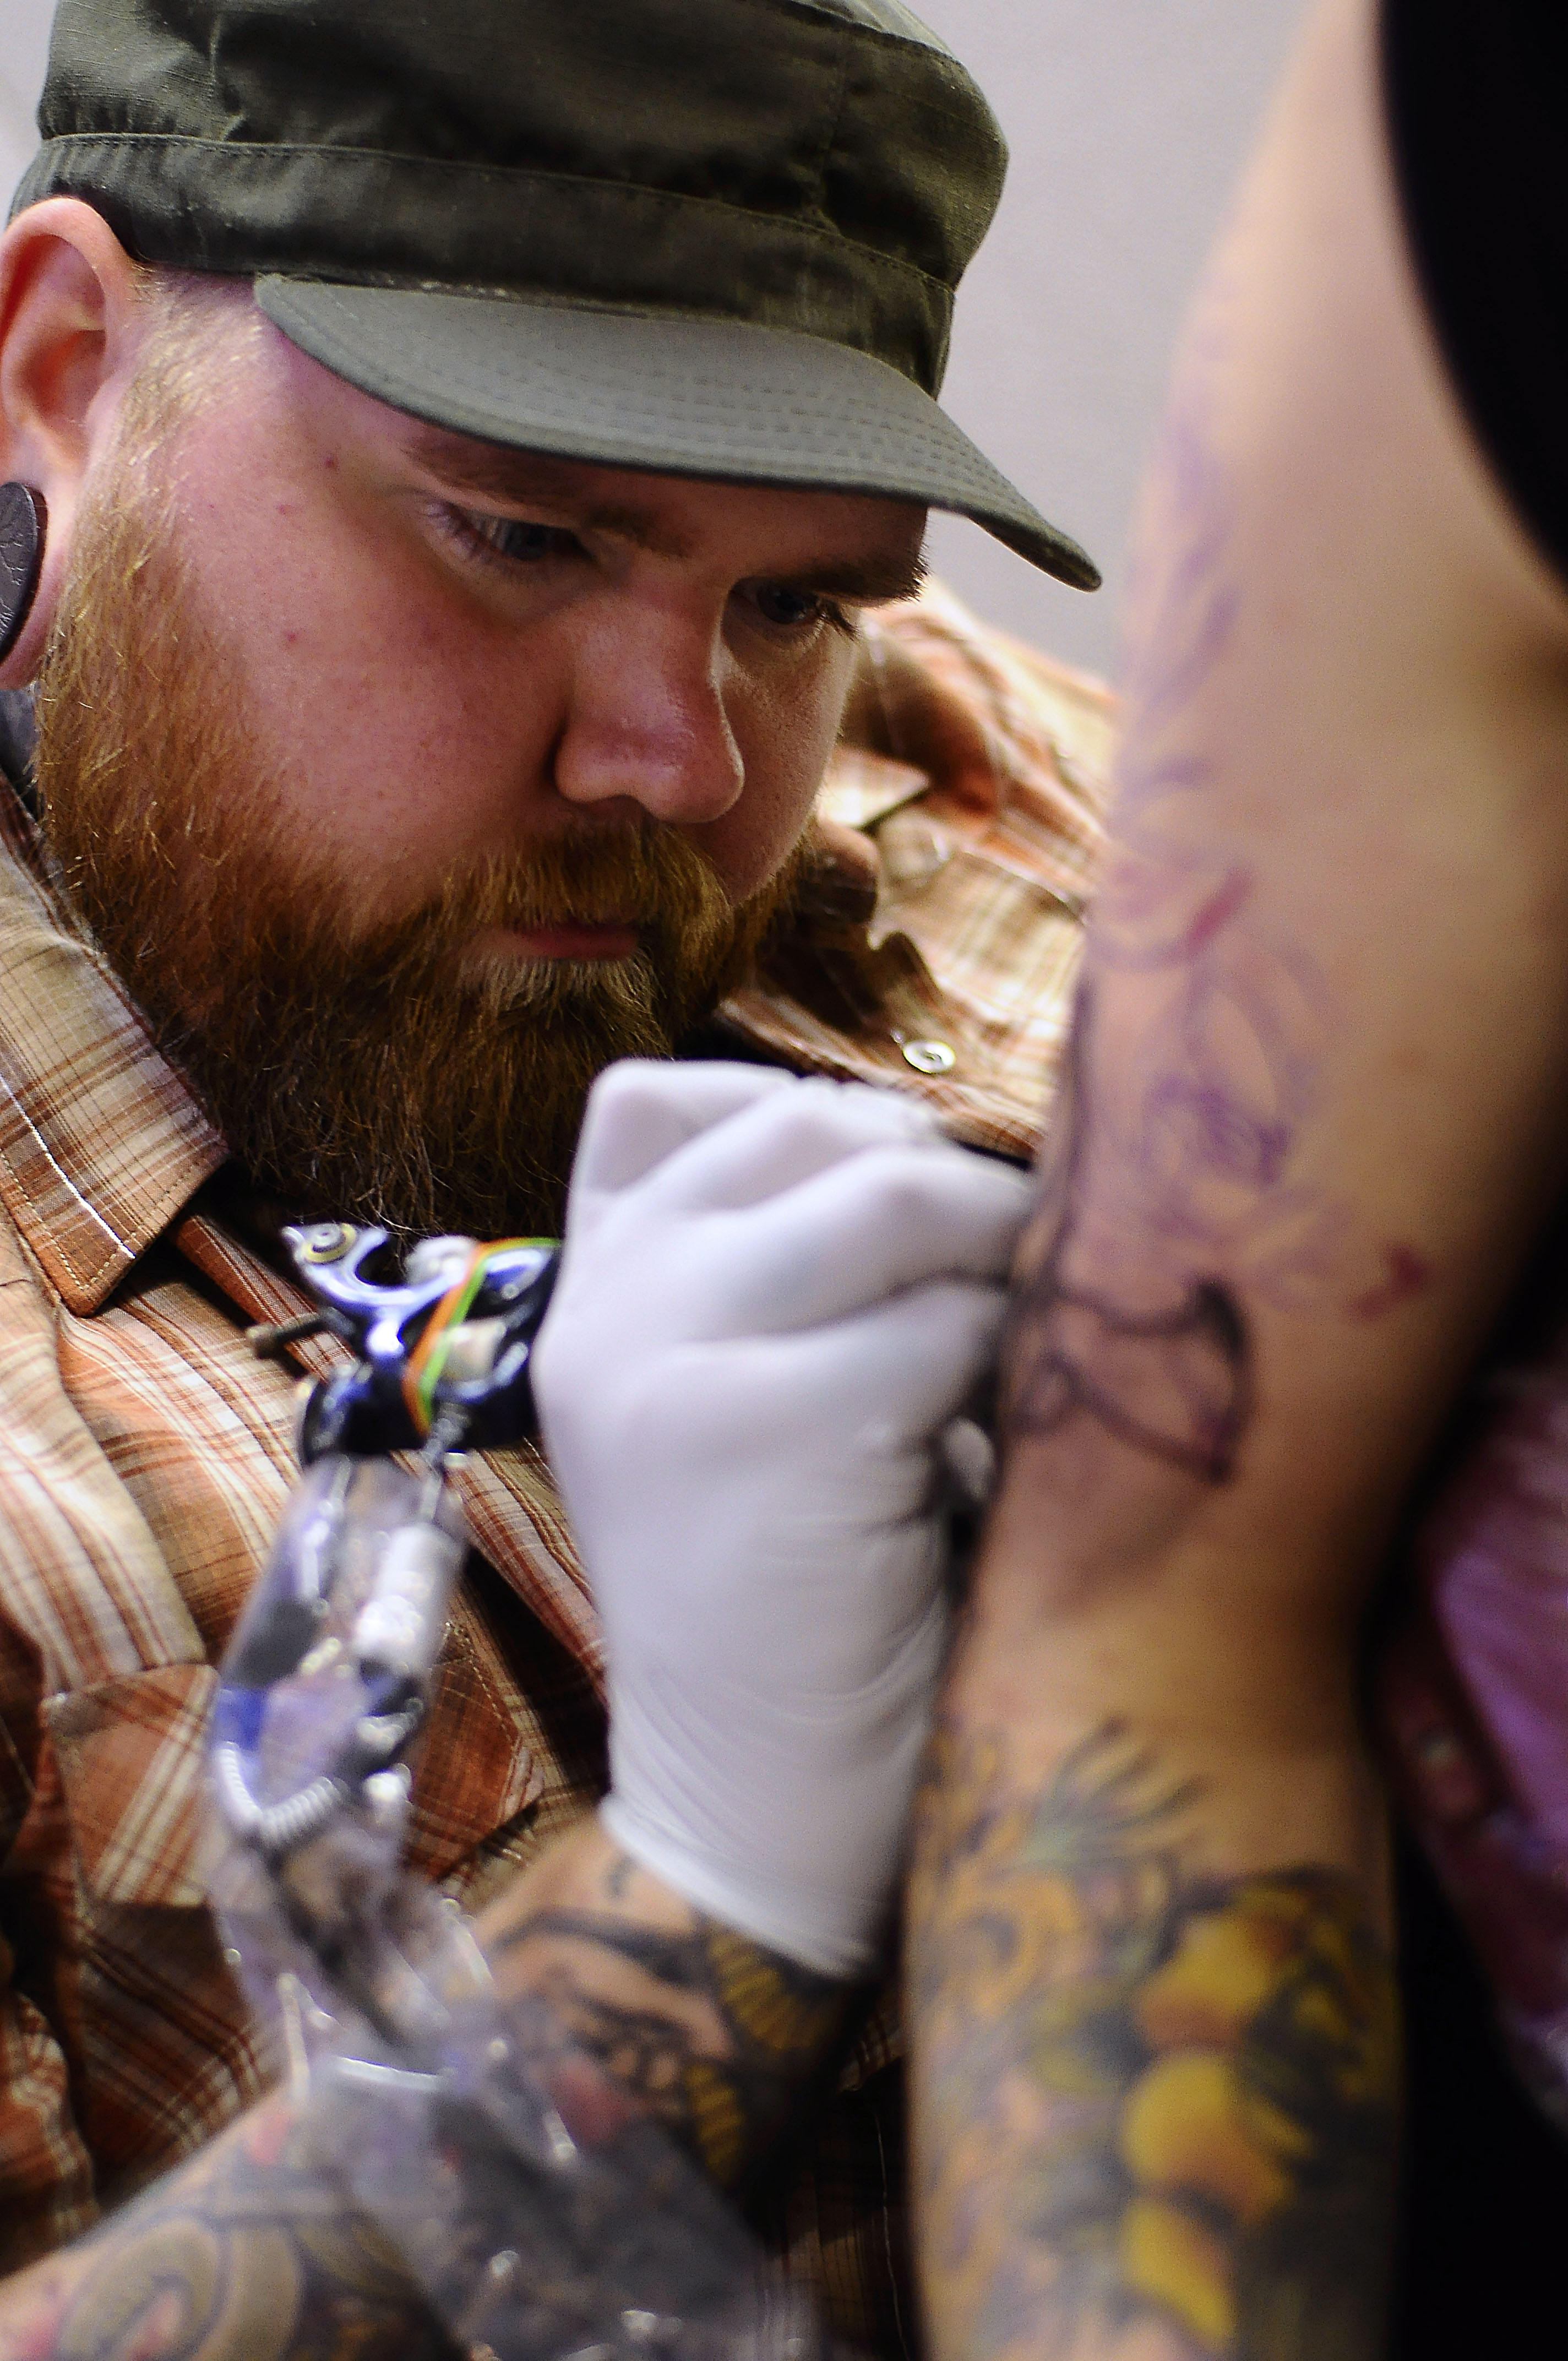 Tattooing at convention